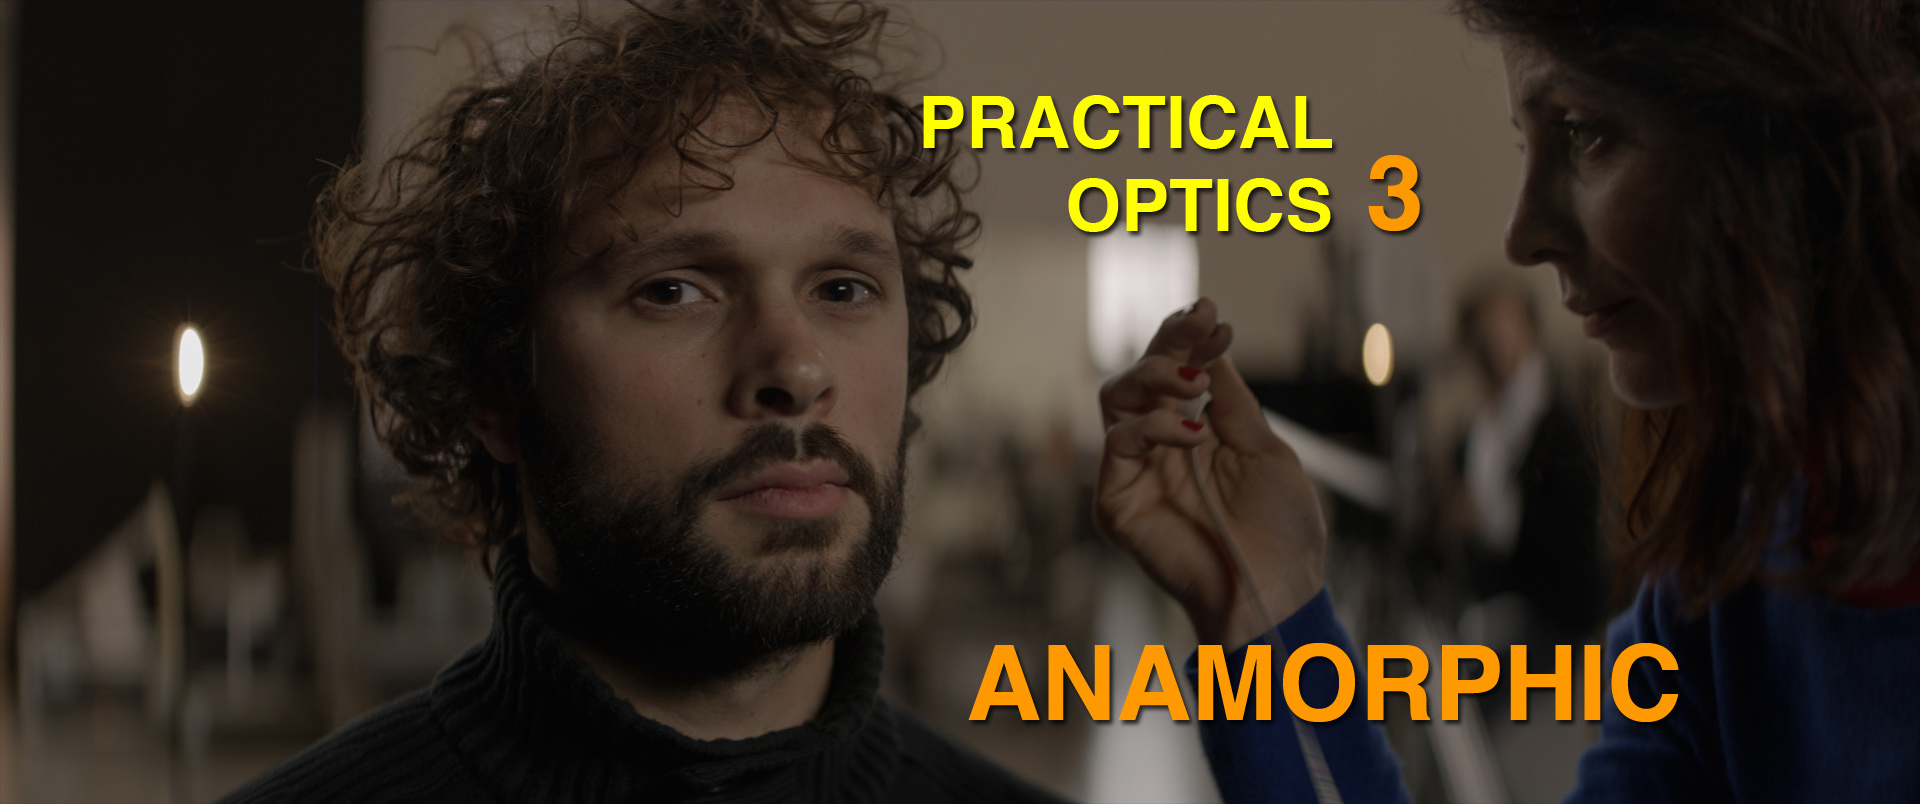 Practical Optics 3 - Introduction to Anamorphic - The American